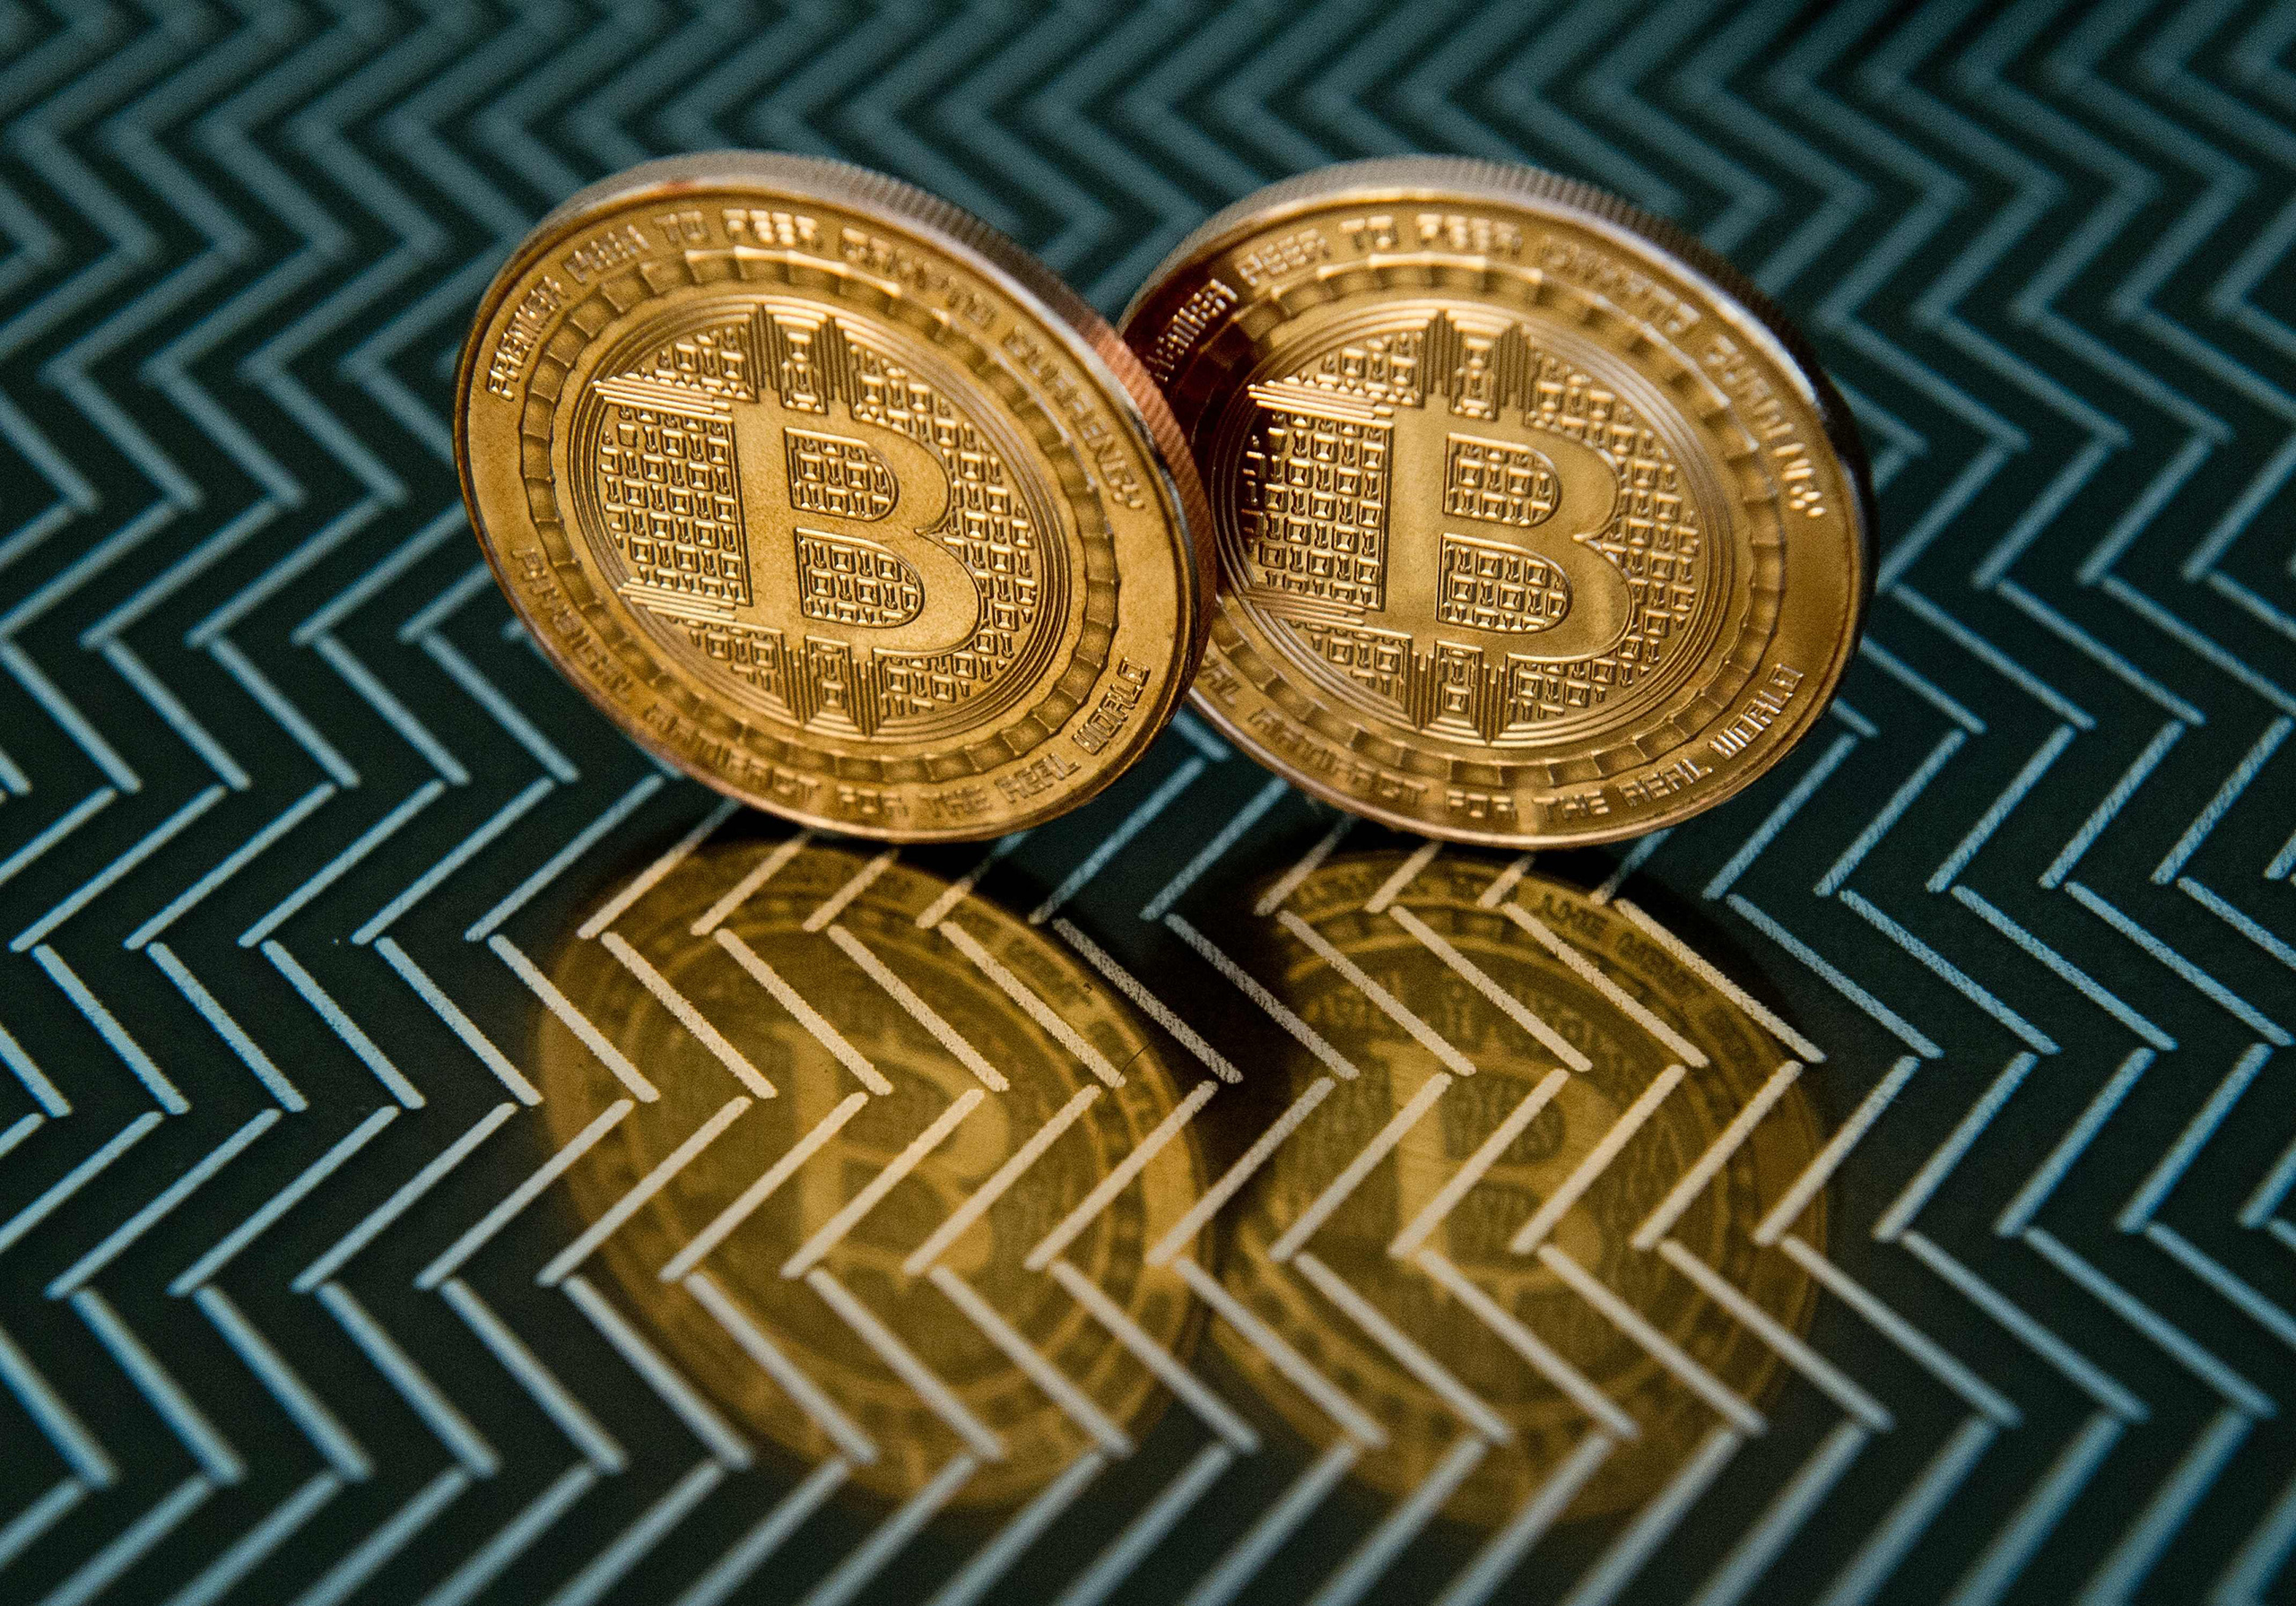 Bitcoin medals are seen in Washington, June 17, 2014. On May 2, an Australian entrepreneur, identified as Craig Wright, revealed himself as the creator following years of speculation about who invented the pioneering digital currency.